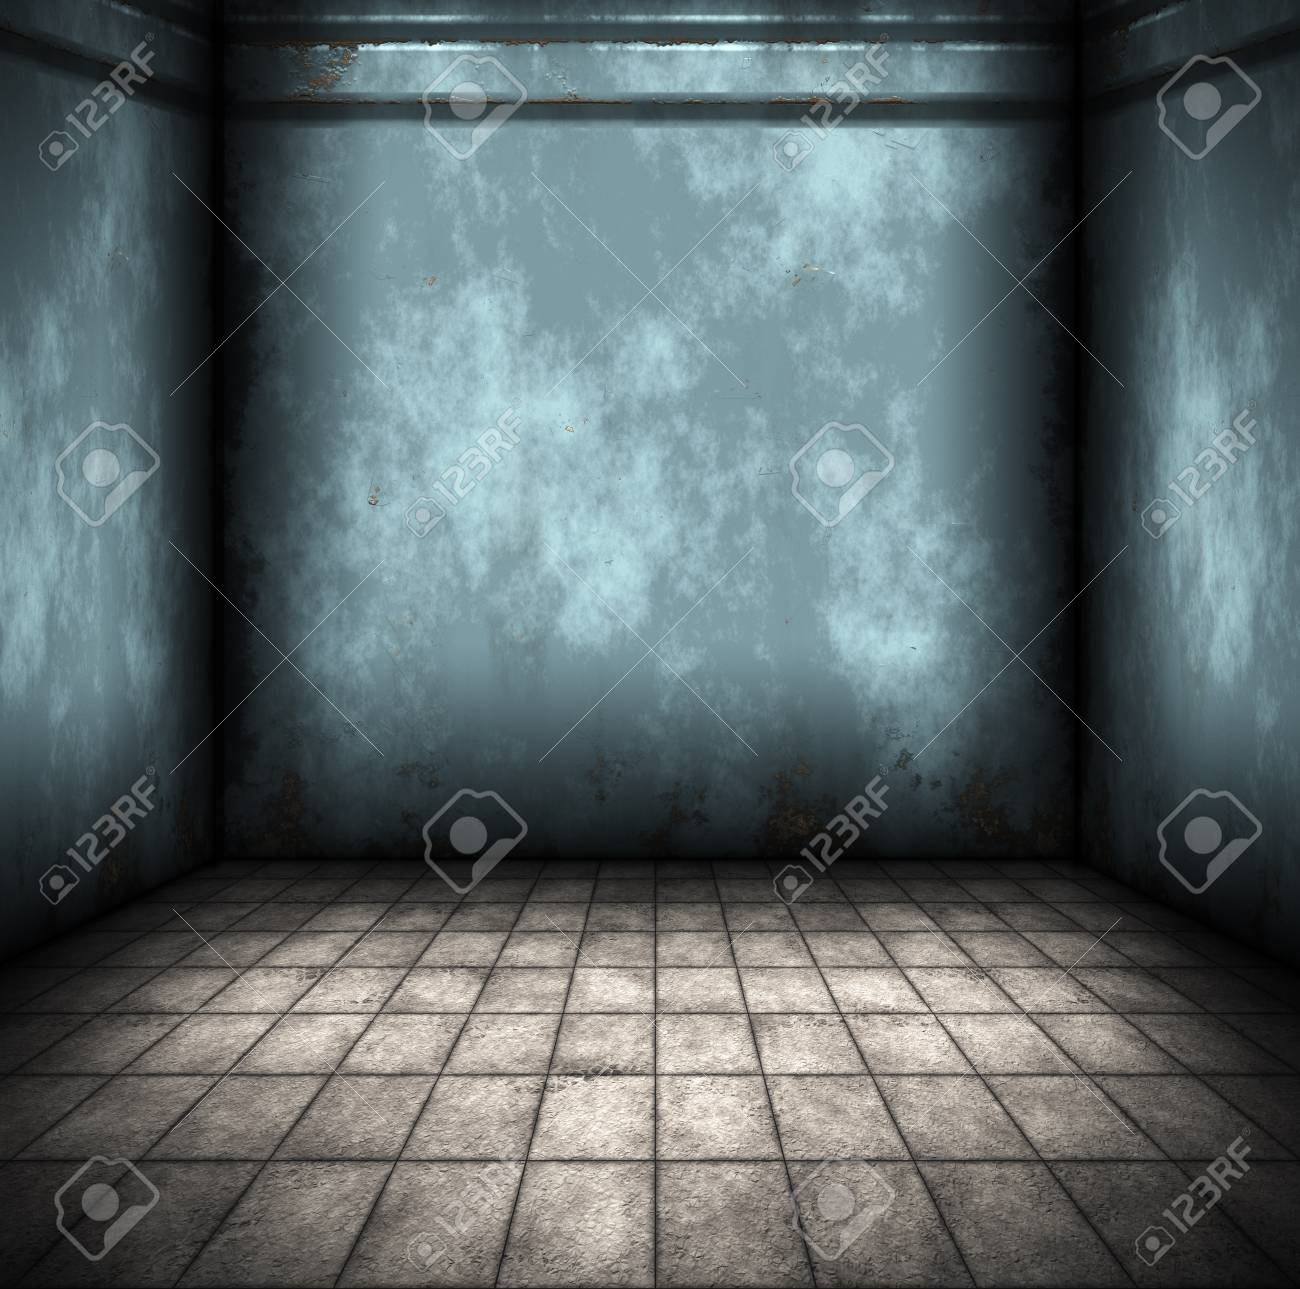 An image of a nice room background Stock Photo - 8262706